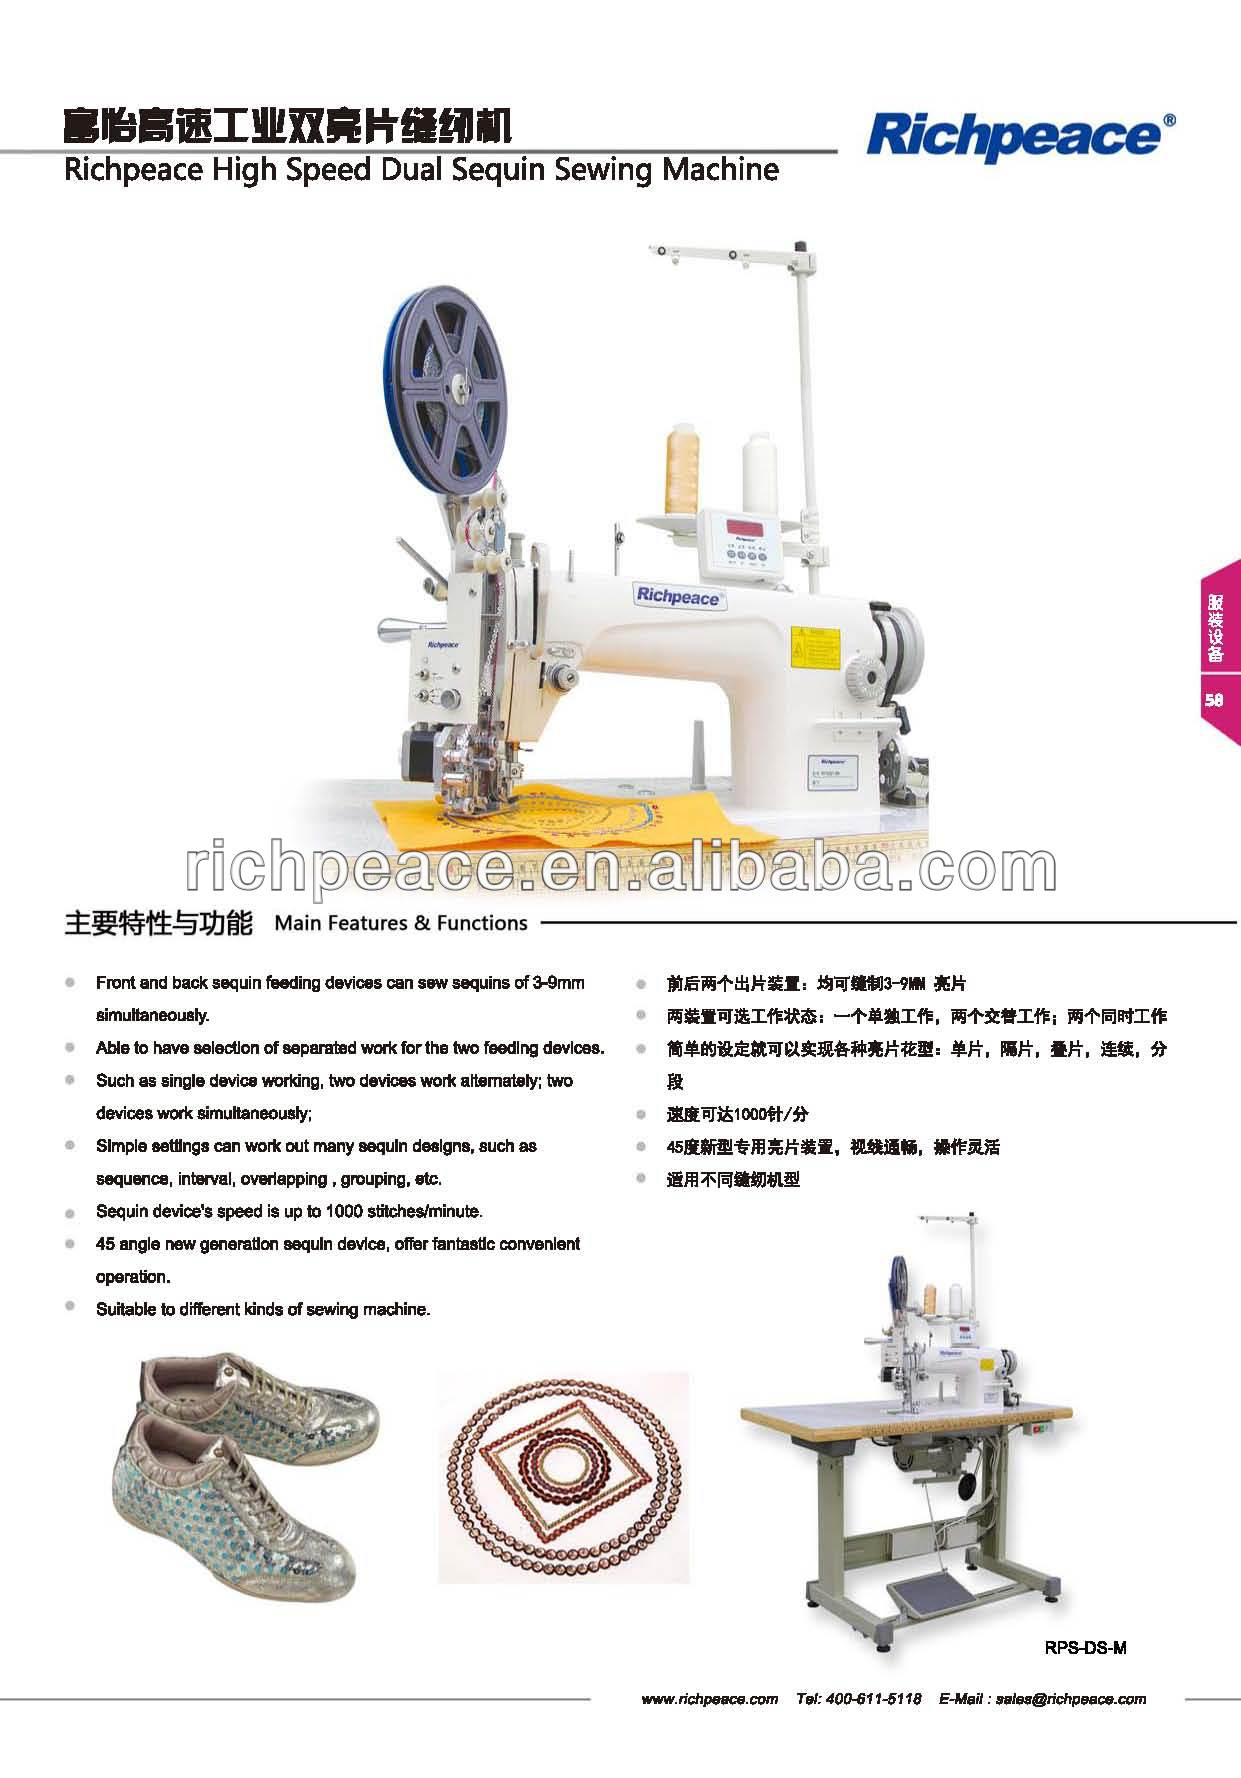 Richpeace High Speed Single Sequin Sewing Machine